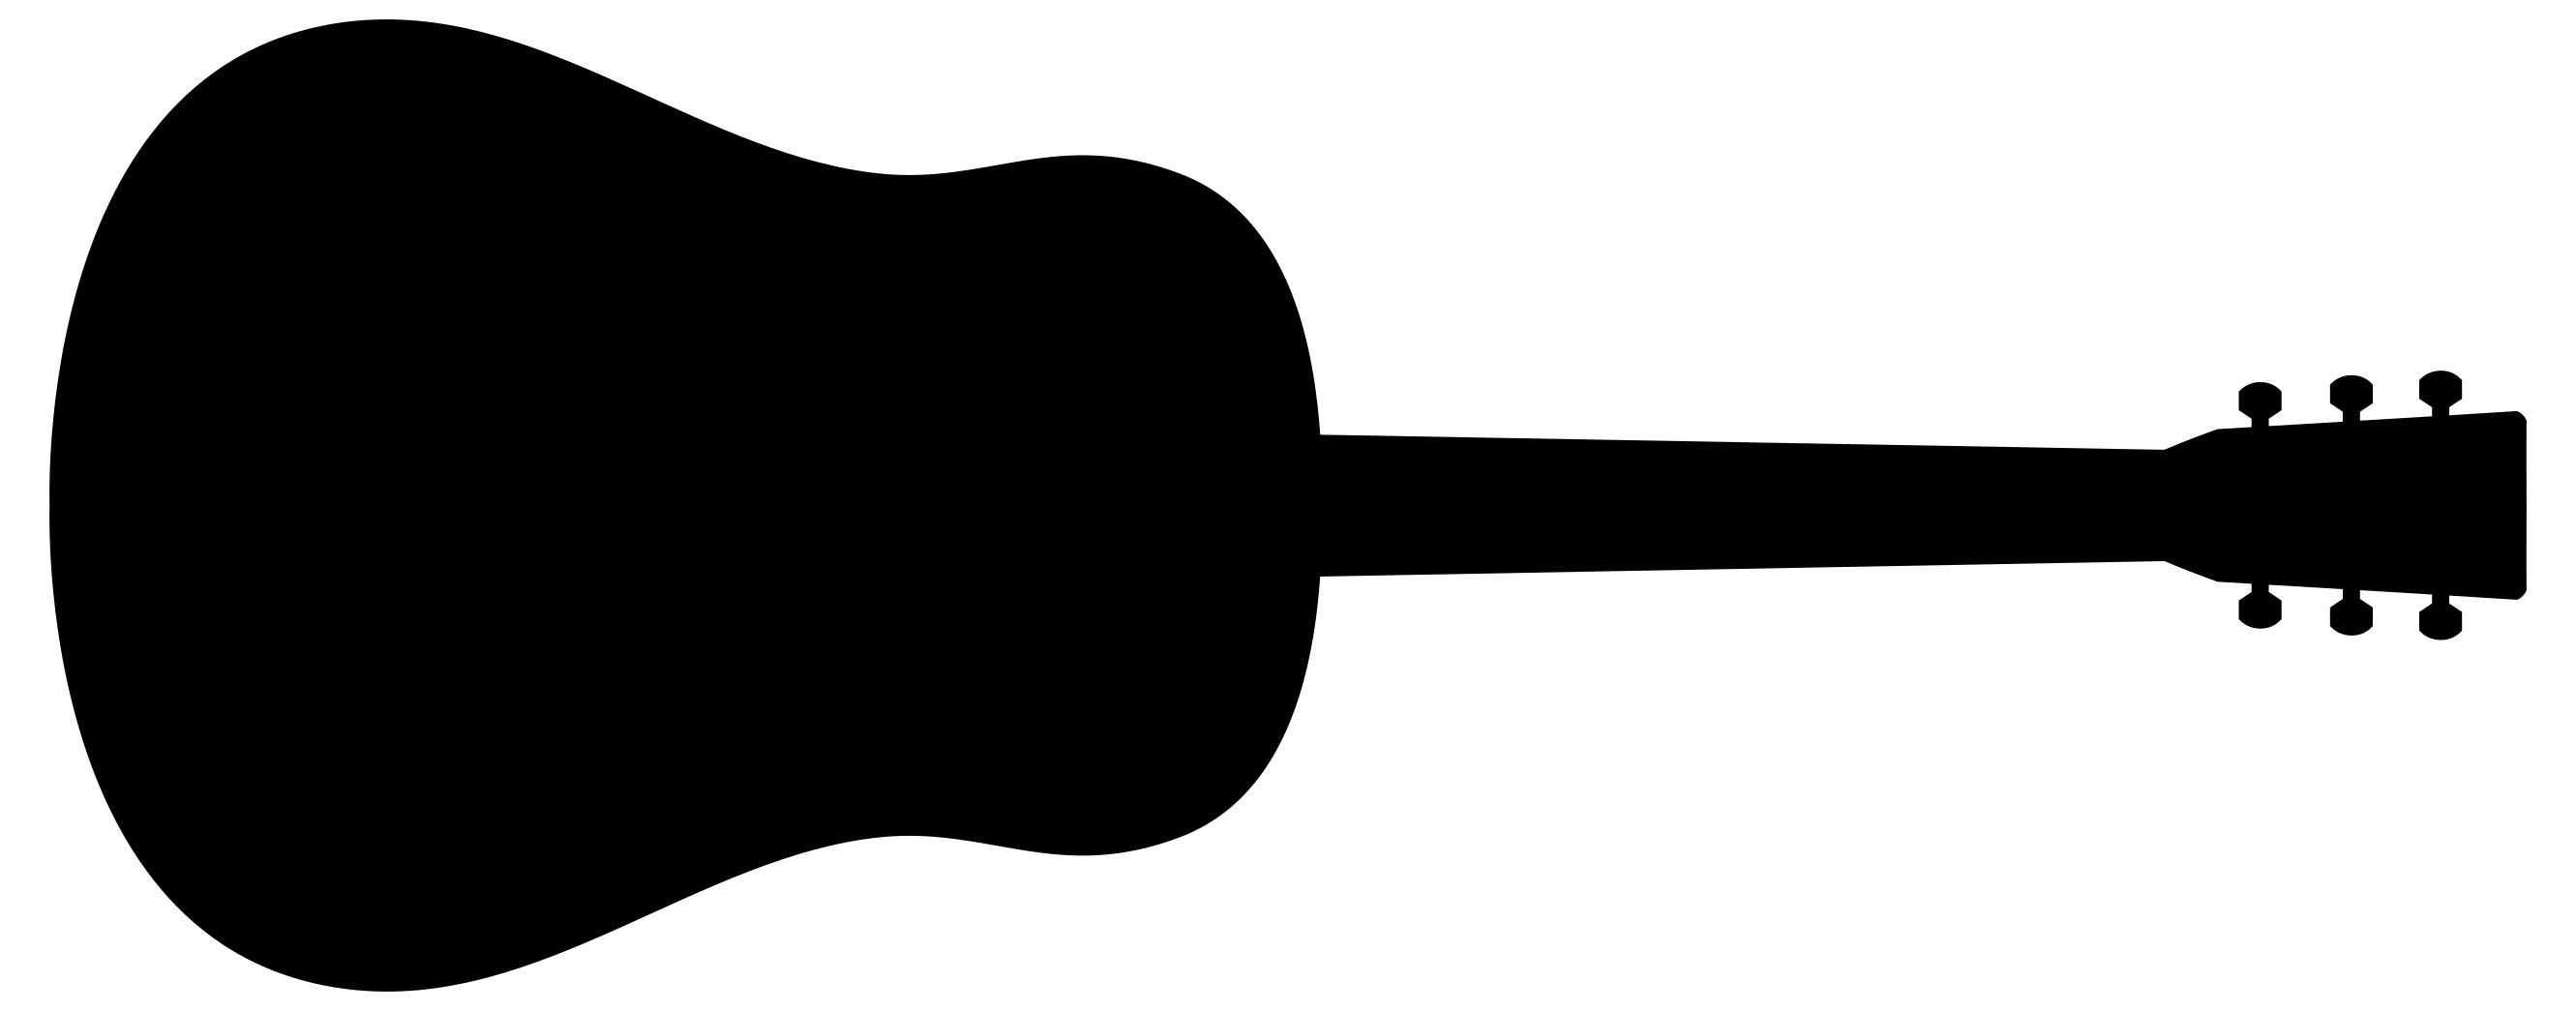 Clipart guitar spiral. Silhouette at getdrawings com